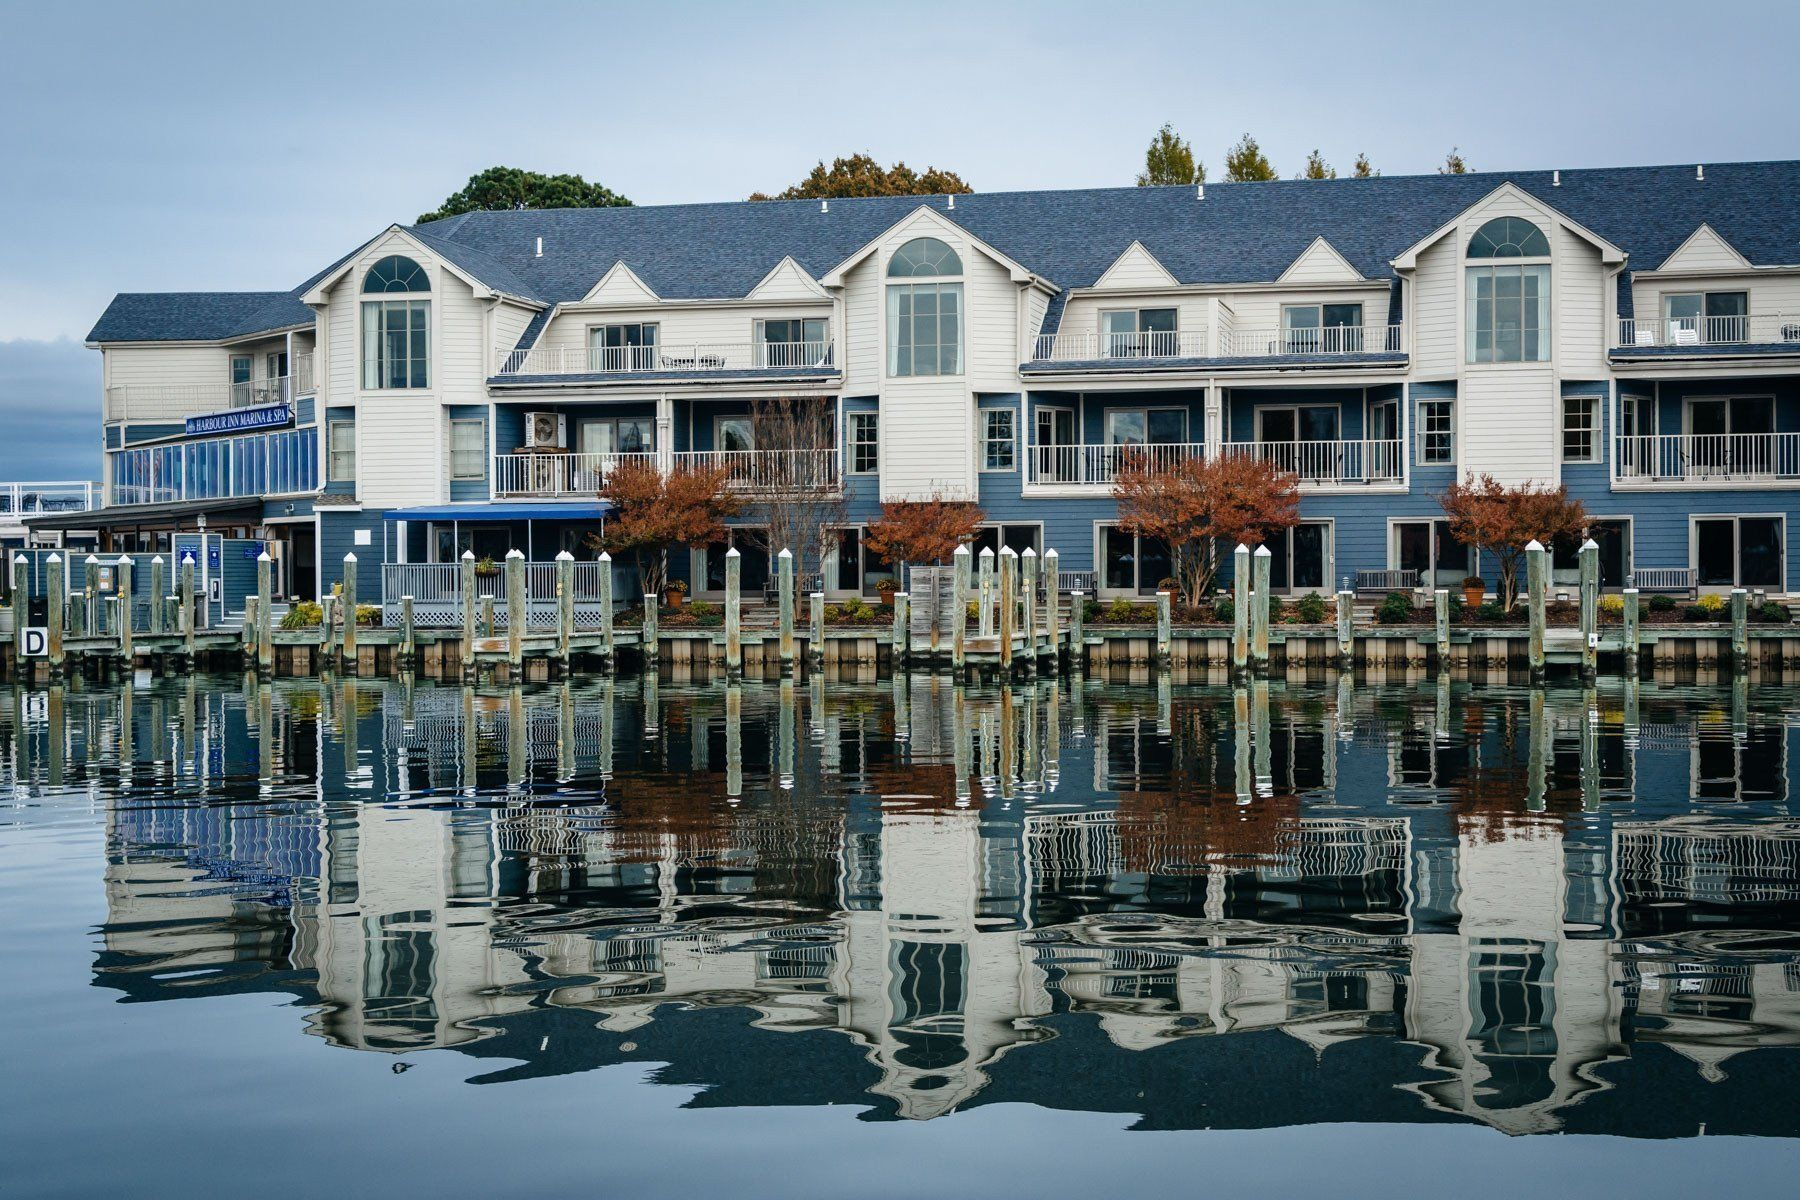 Hotel Along The Miles River In St Michaels Maryland Photo Print On Canvas Metal Or Framed